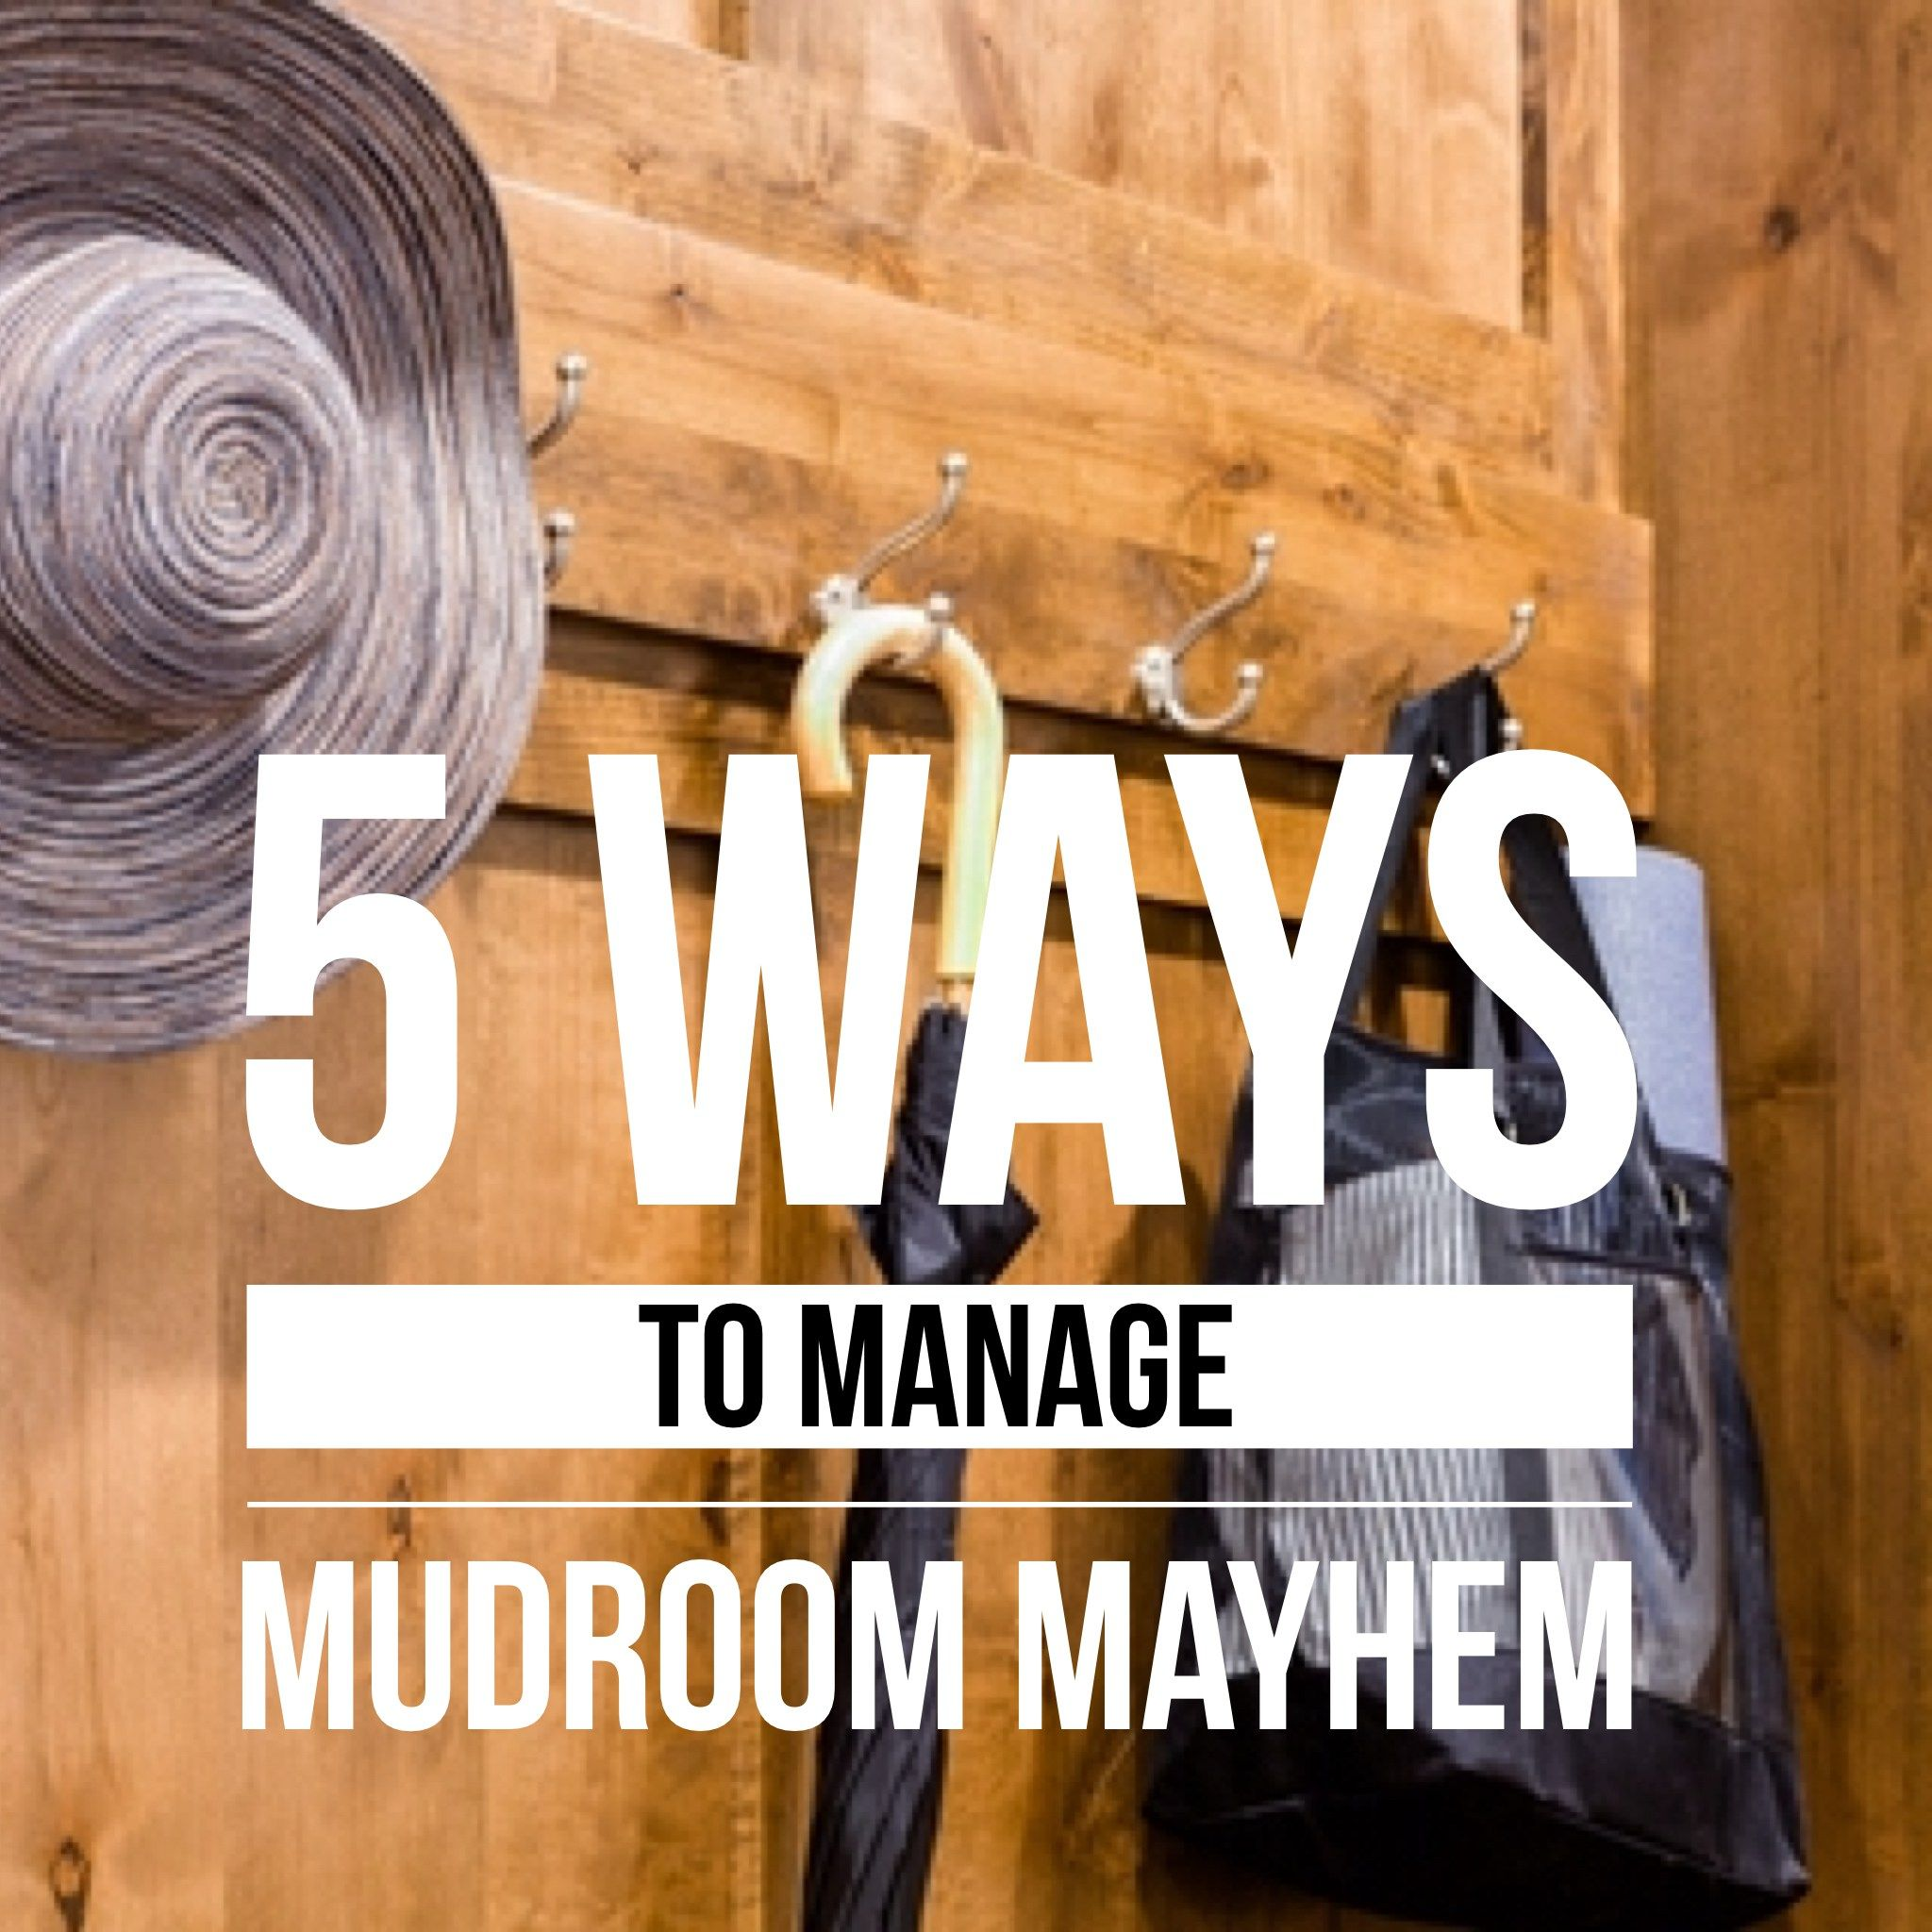 5 Ways To Manage Mudroom Mayhem. Organizing Tips For The Mudroom Area By  Professional Organizer, Nancy Haworth Of On Task Organizing In Raleigh, NC